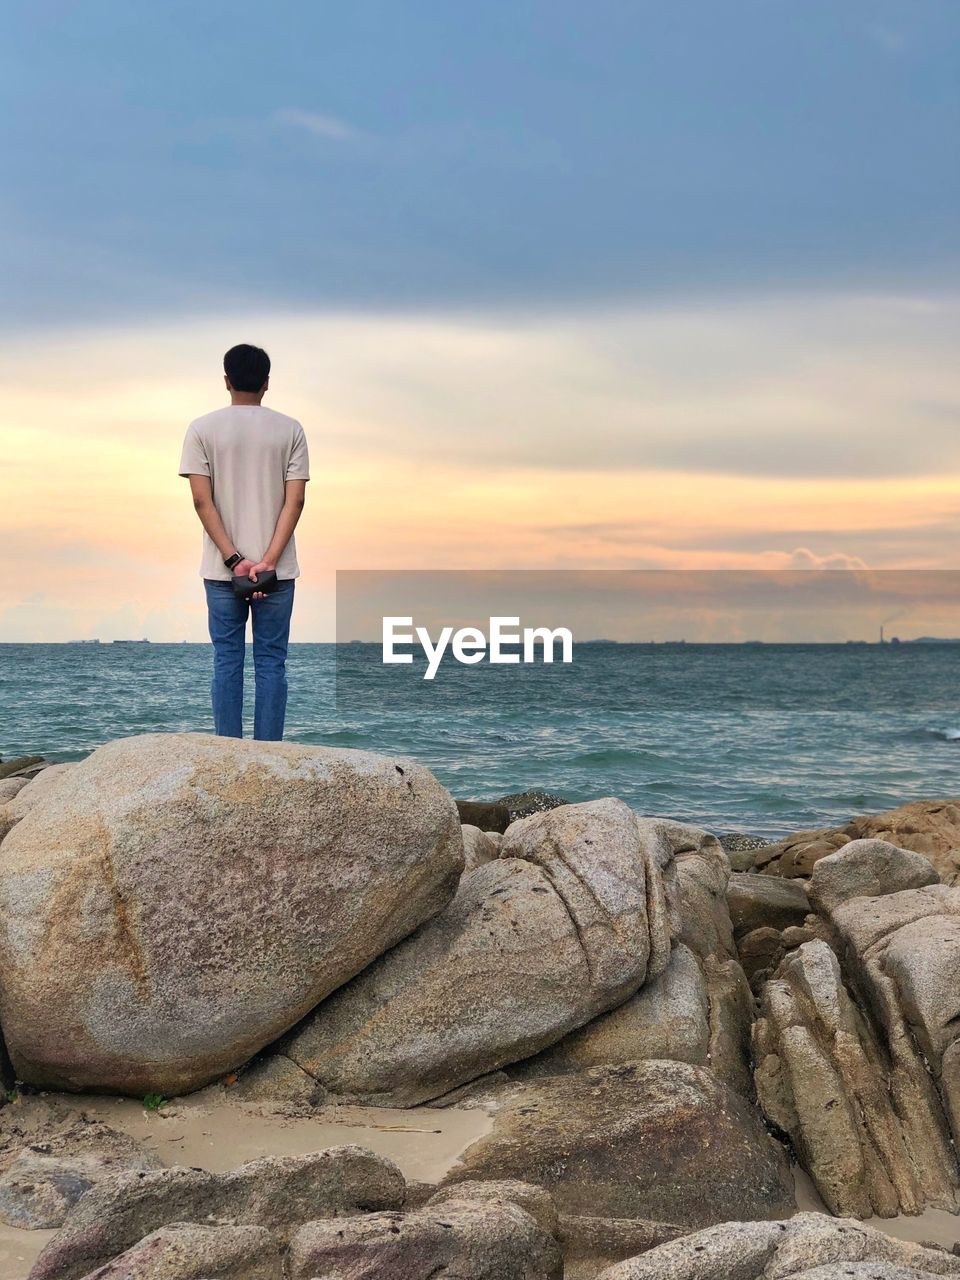 sea, rock, sky, rock - object, one person, water, rear view, standing, solid, real people, scenics - nature, beauty in nature, horizon over water, horizon, full length, leisure activity, men, cloud - sky, lifestyles, outdoors, looking at view